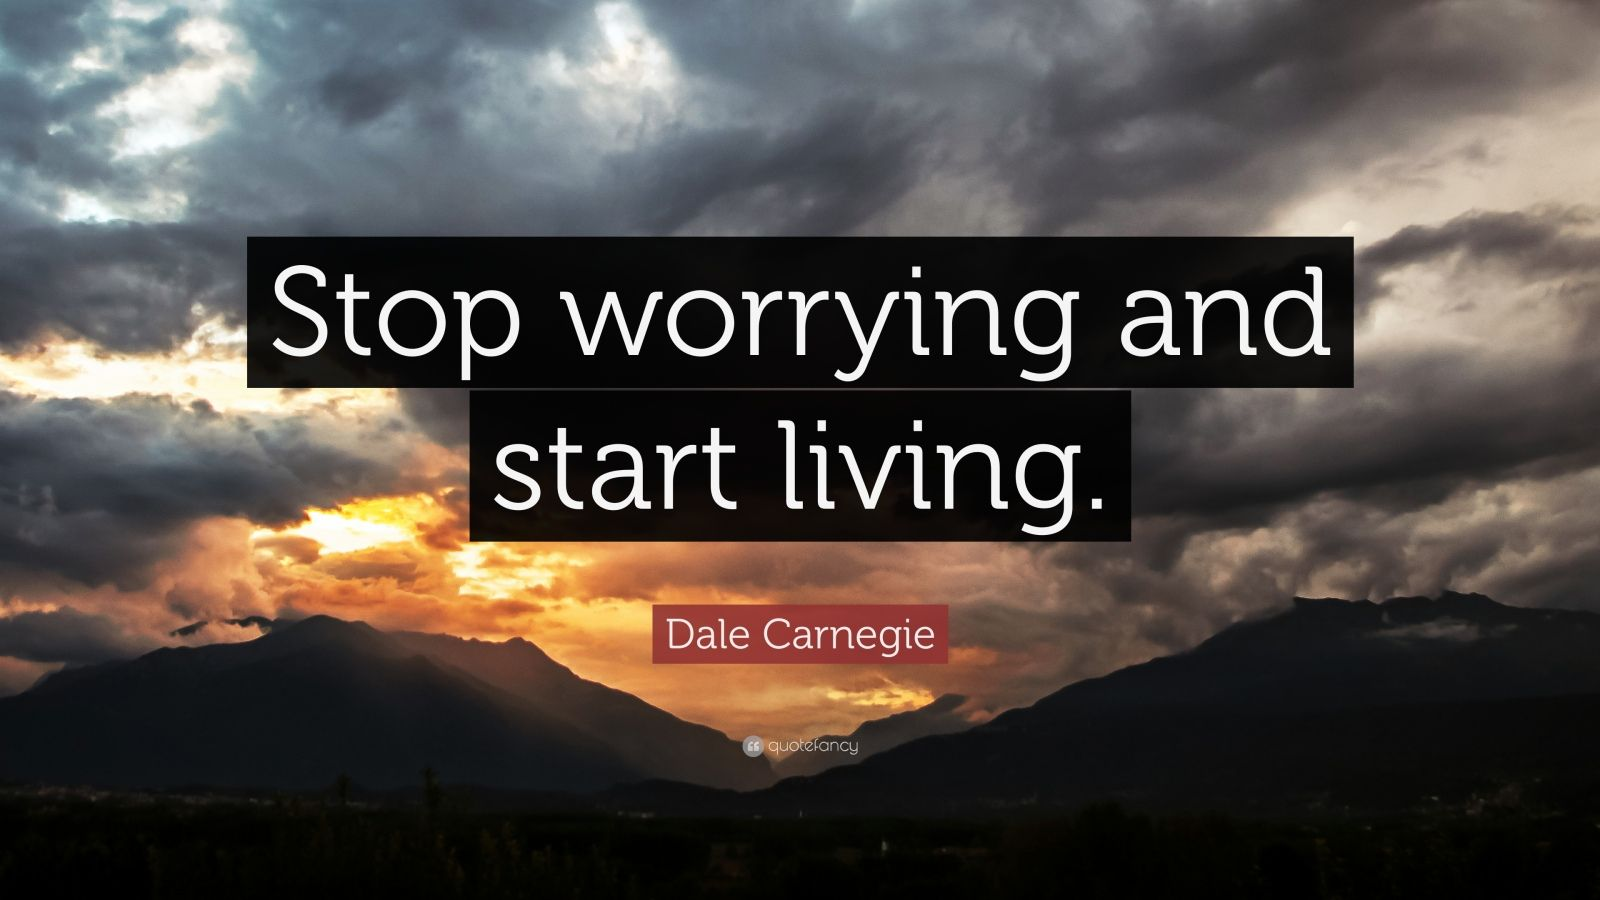 Worry quotes 40 wallpapers quotefancy - Stop wishing start doing hd wallpaper ...